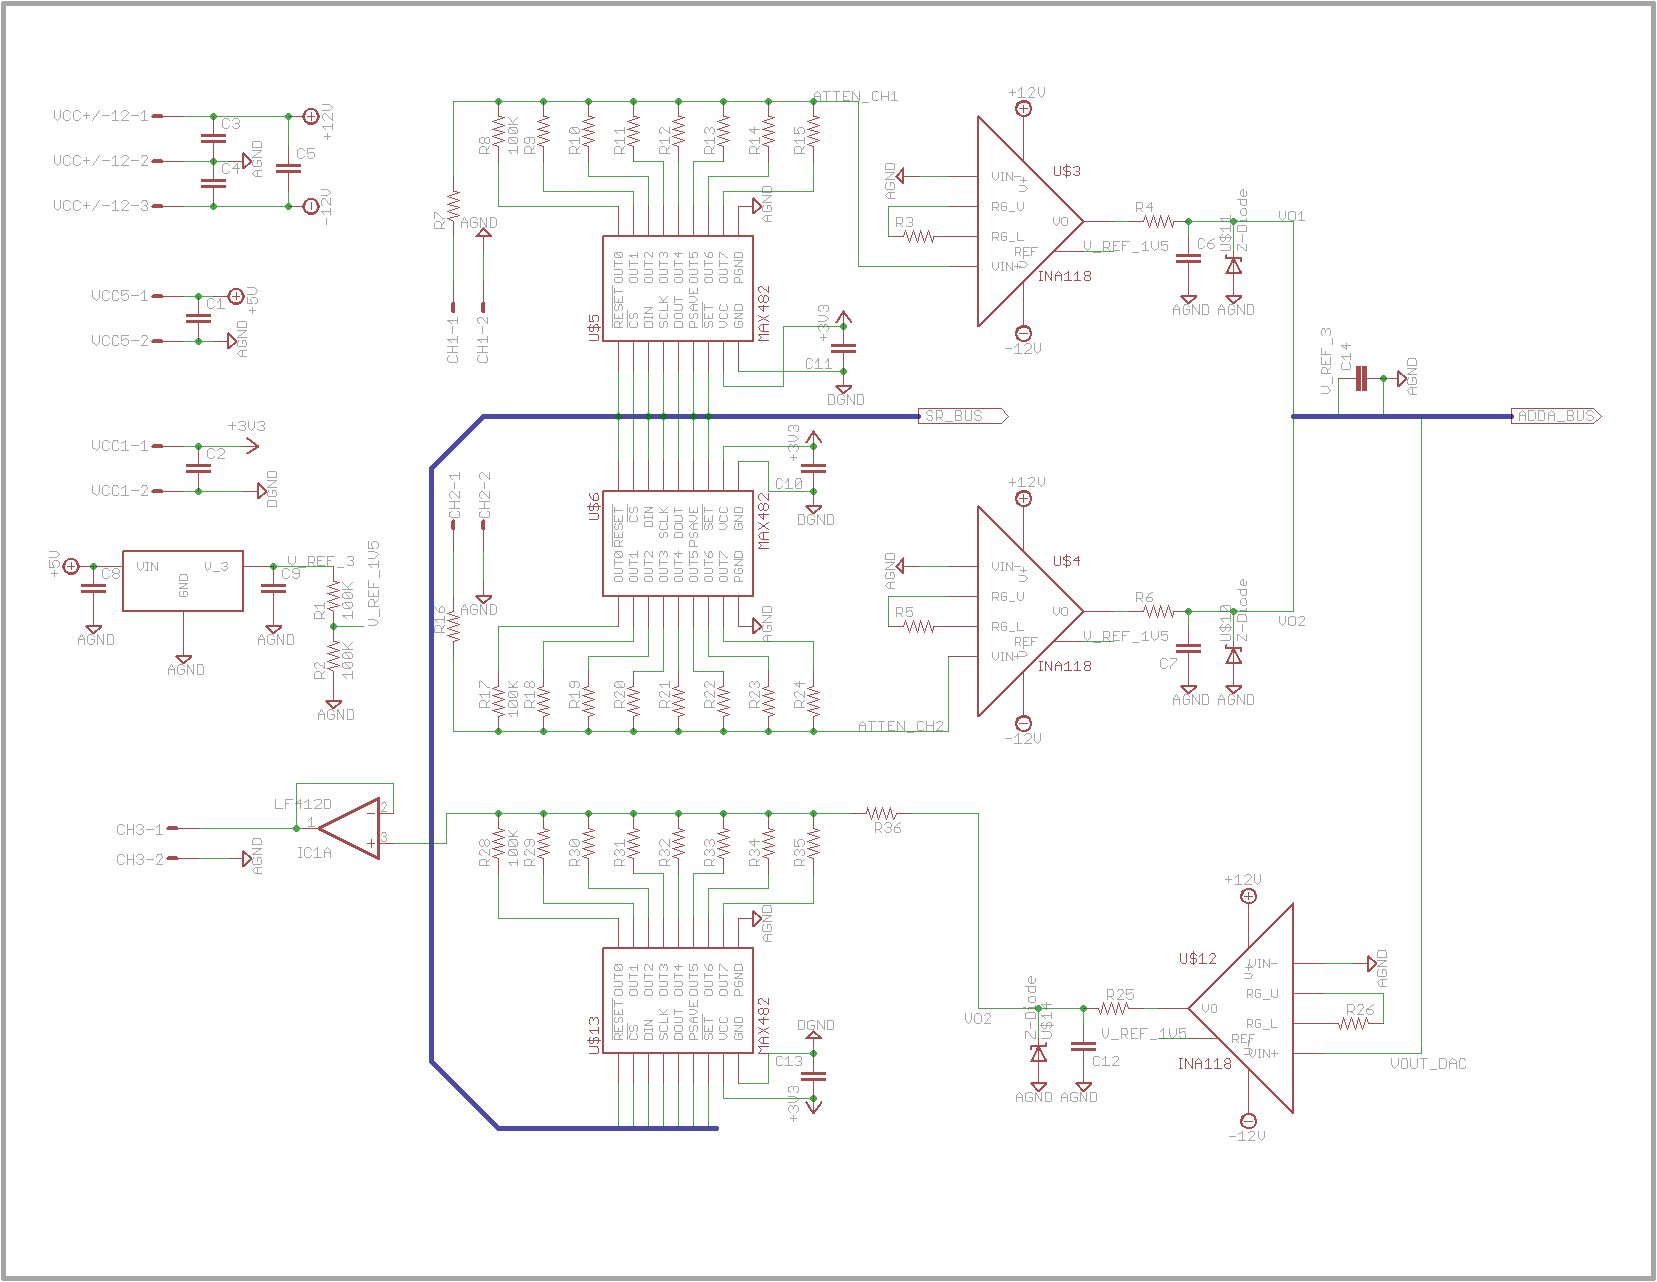 Welcome To Yangs 477 Note Book Relay Driver Interfacing Schematics Including The Connections And Implementaton Of A Second State Register On Voltage Regulator I Also Helped Listed Components